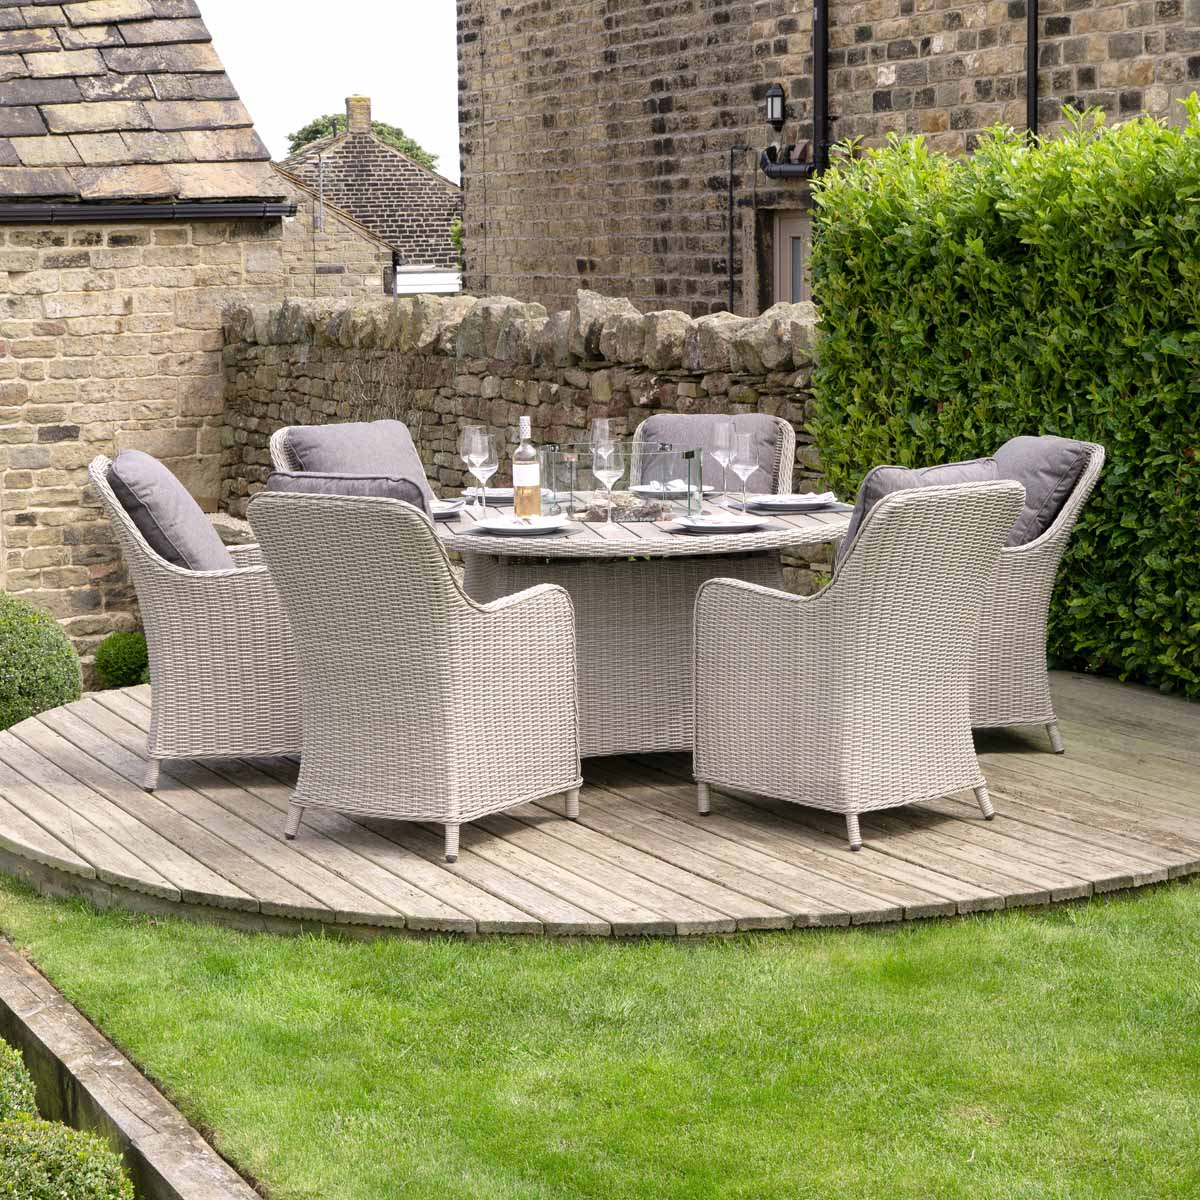 Pacific Lifestyle Antigua 6 Seater Round Dining Set with Fire Pit - Stone Grey